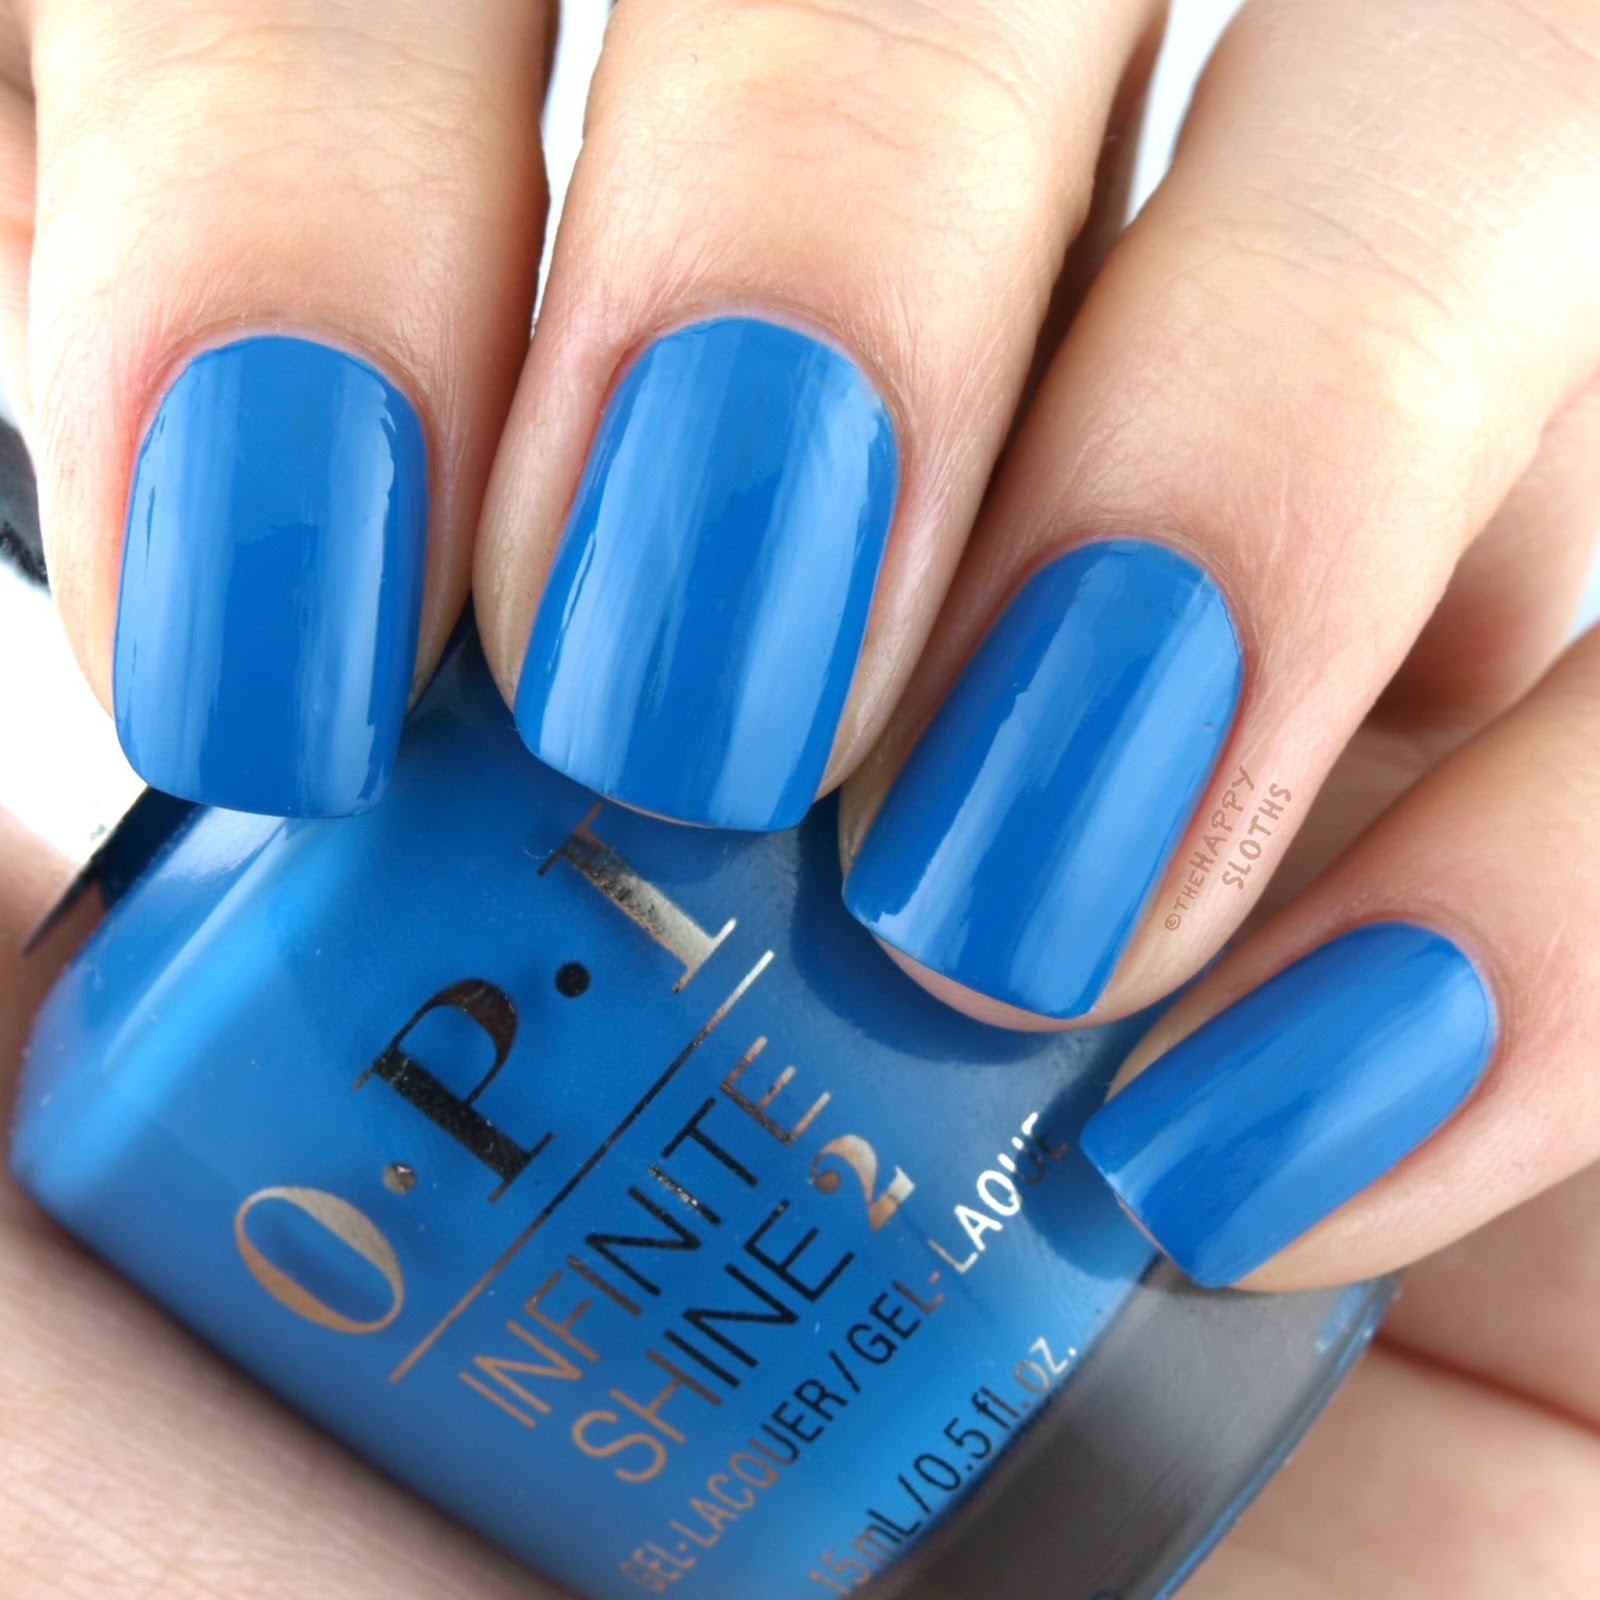 OPI Fiji Trop-i-cal-fiji-istic Swatches and Review